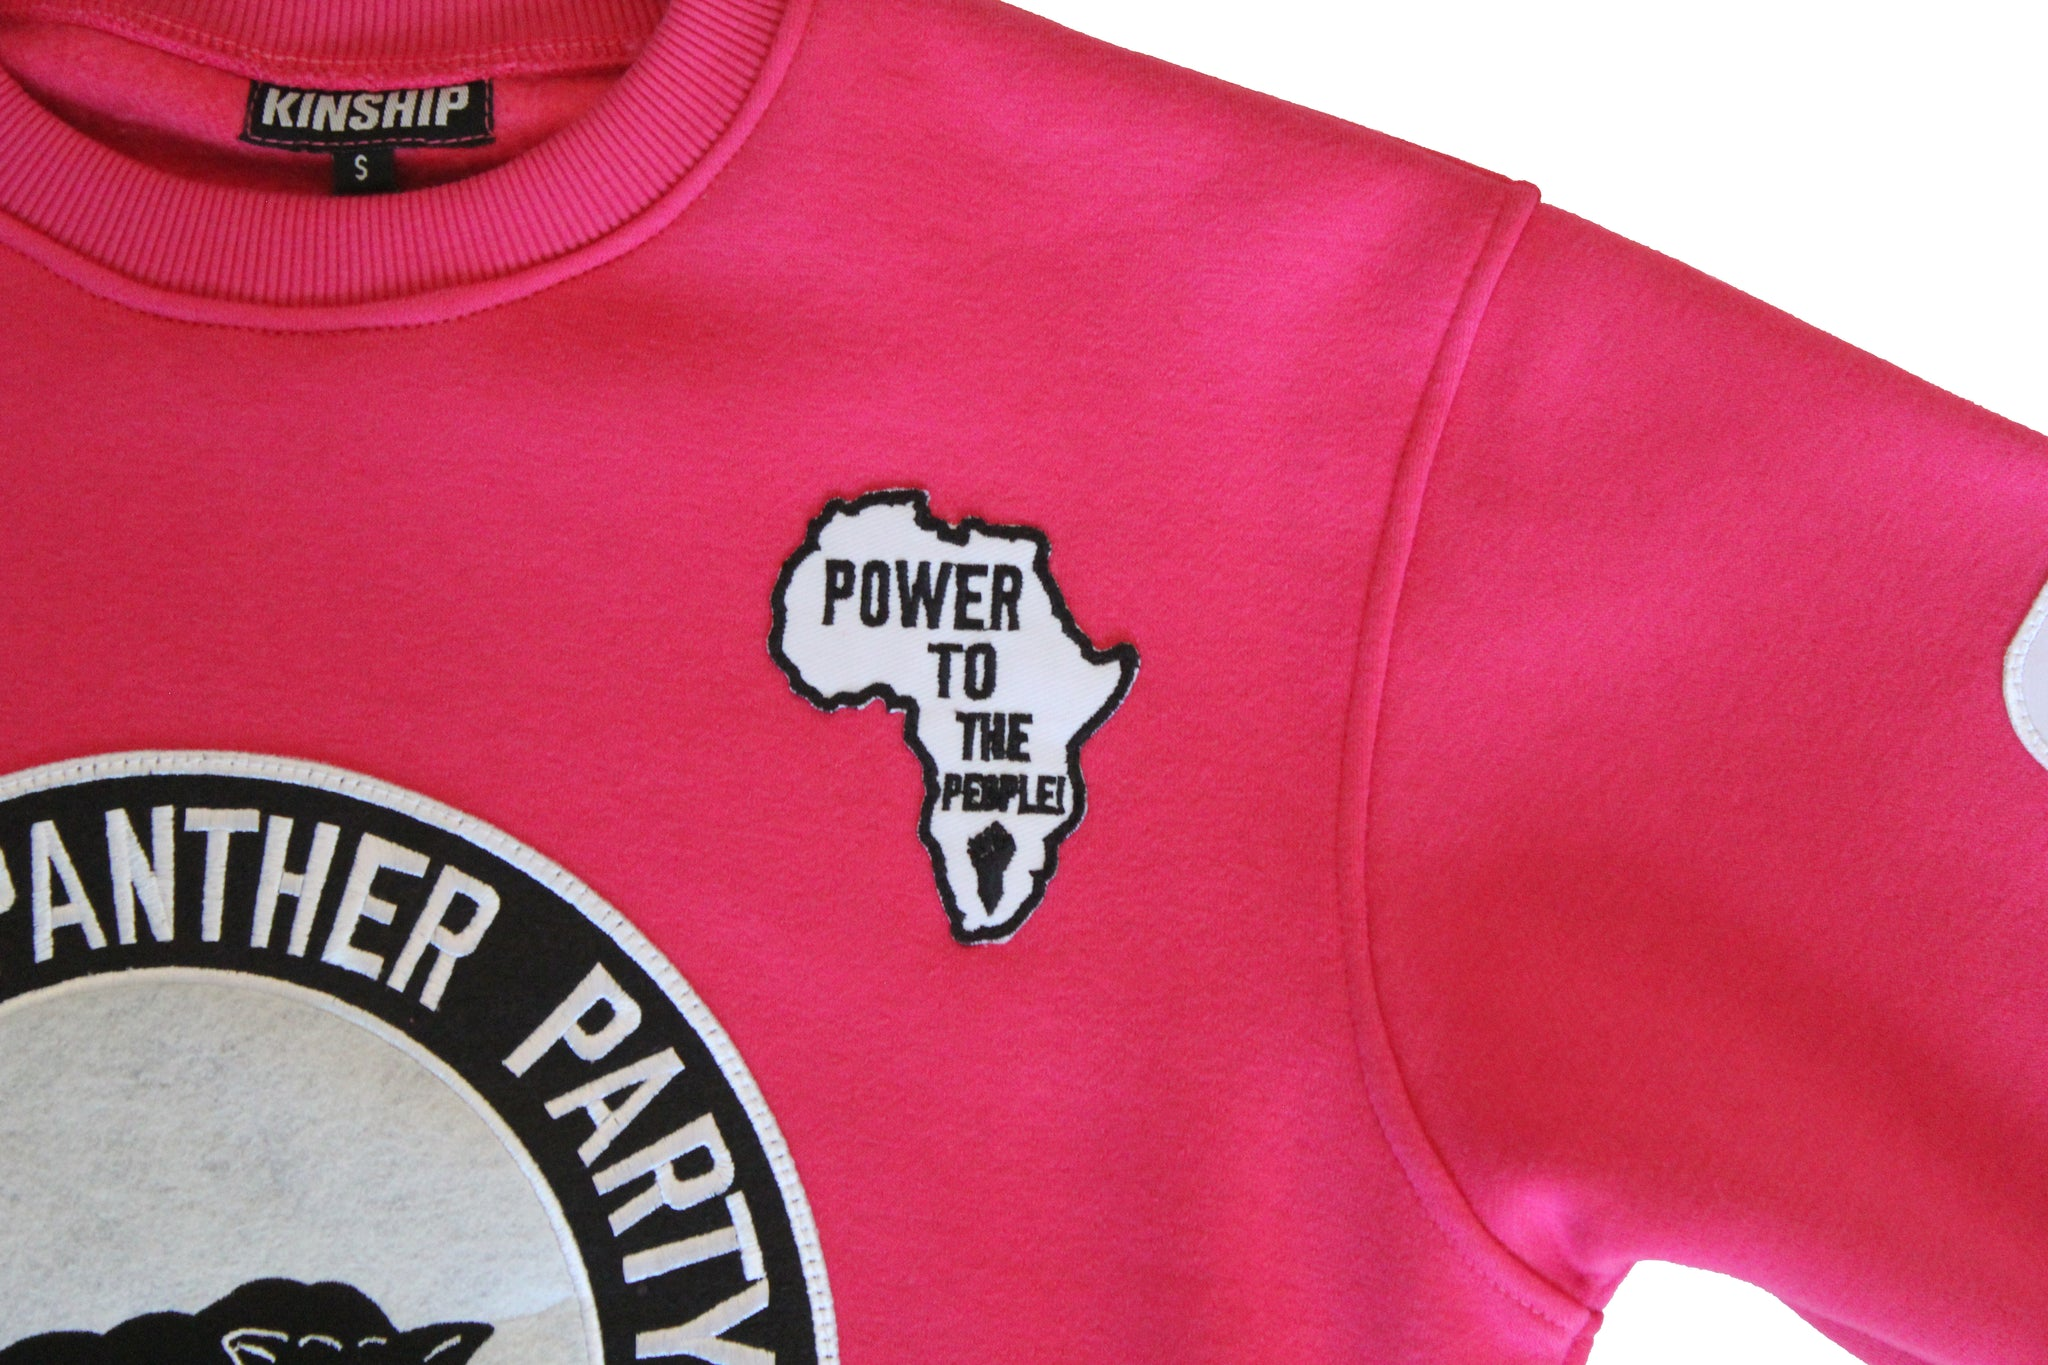 Black Panther Hockey Sweatshirt in Pink Contrast (Men's Sizing)